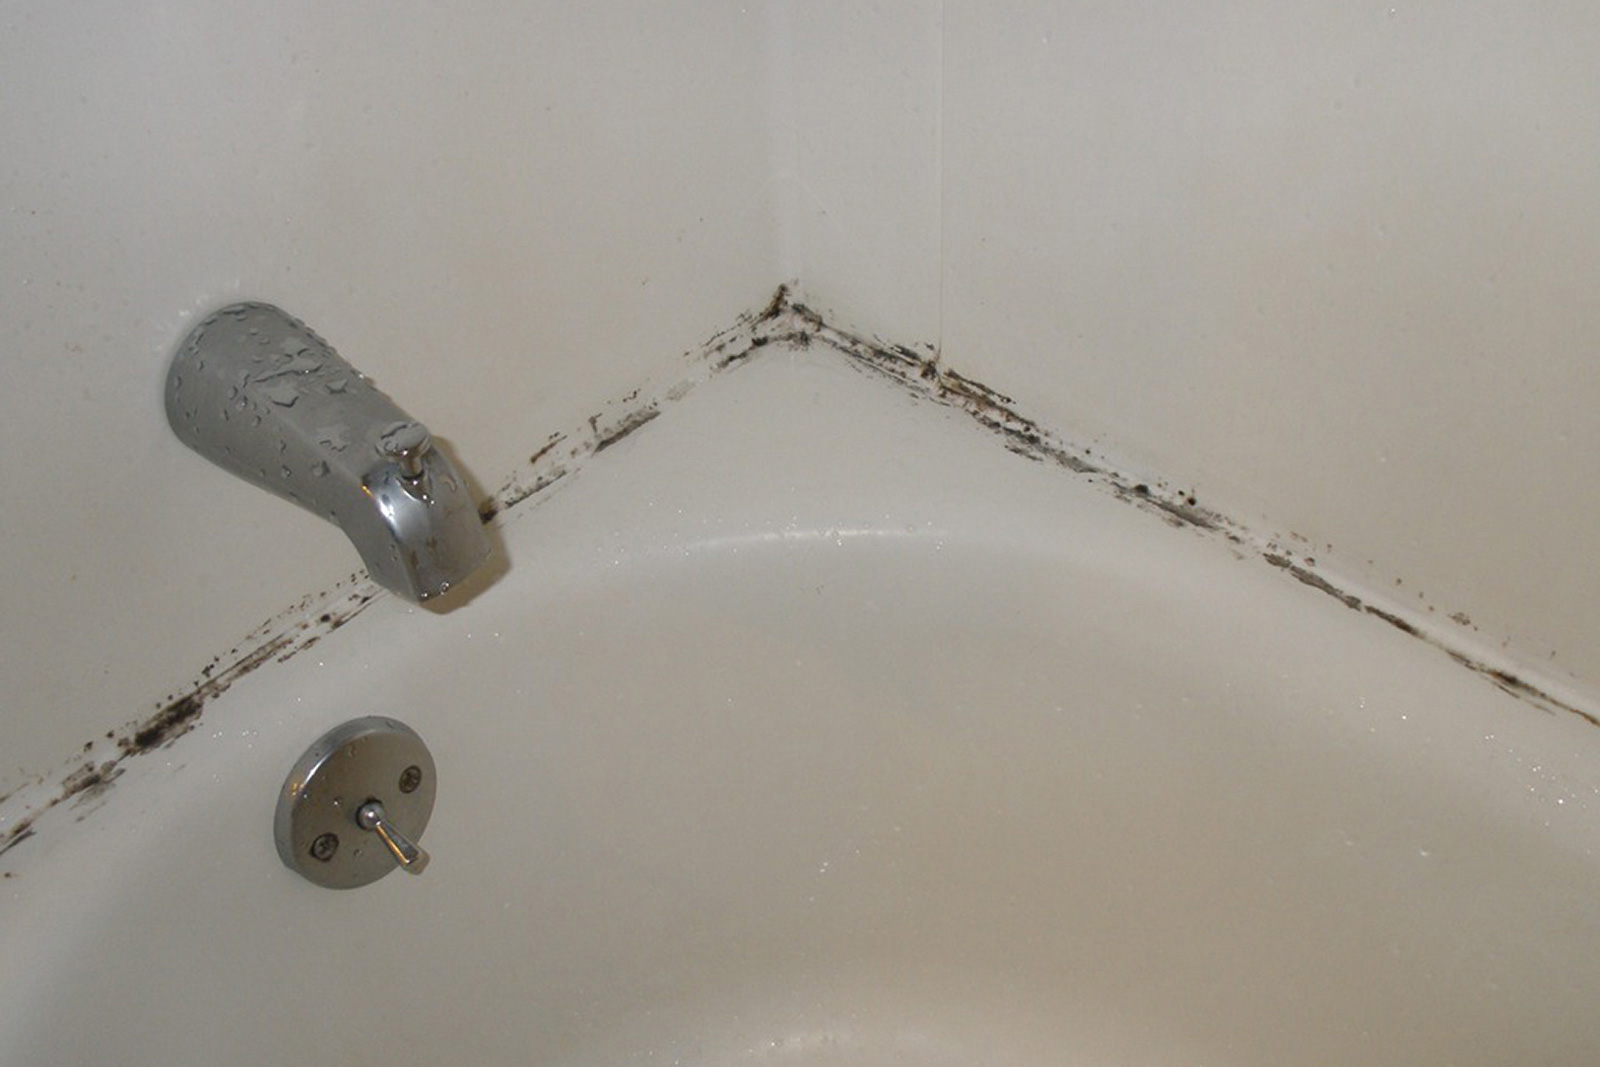 Bathroom Mold How To Kill Bathroom Mold Mold On Bathroom Ceiling - How to kill black mold in bathroom